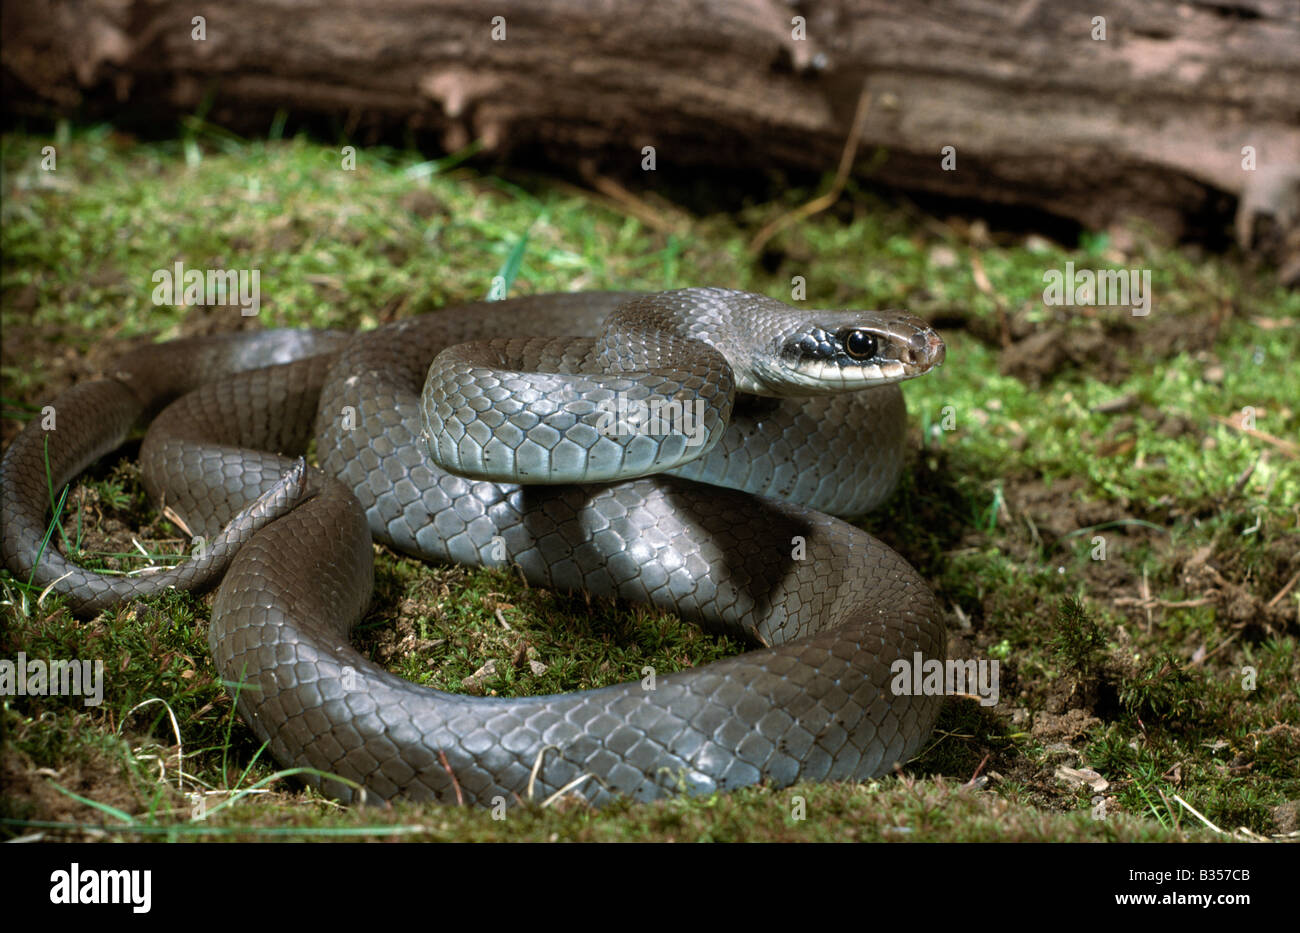 Blue Racer Coluber constrictor foxi - Stock Image